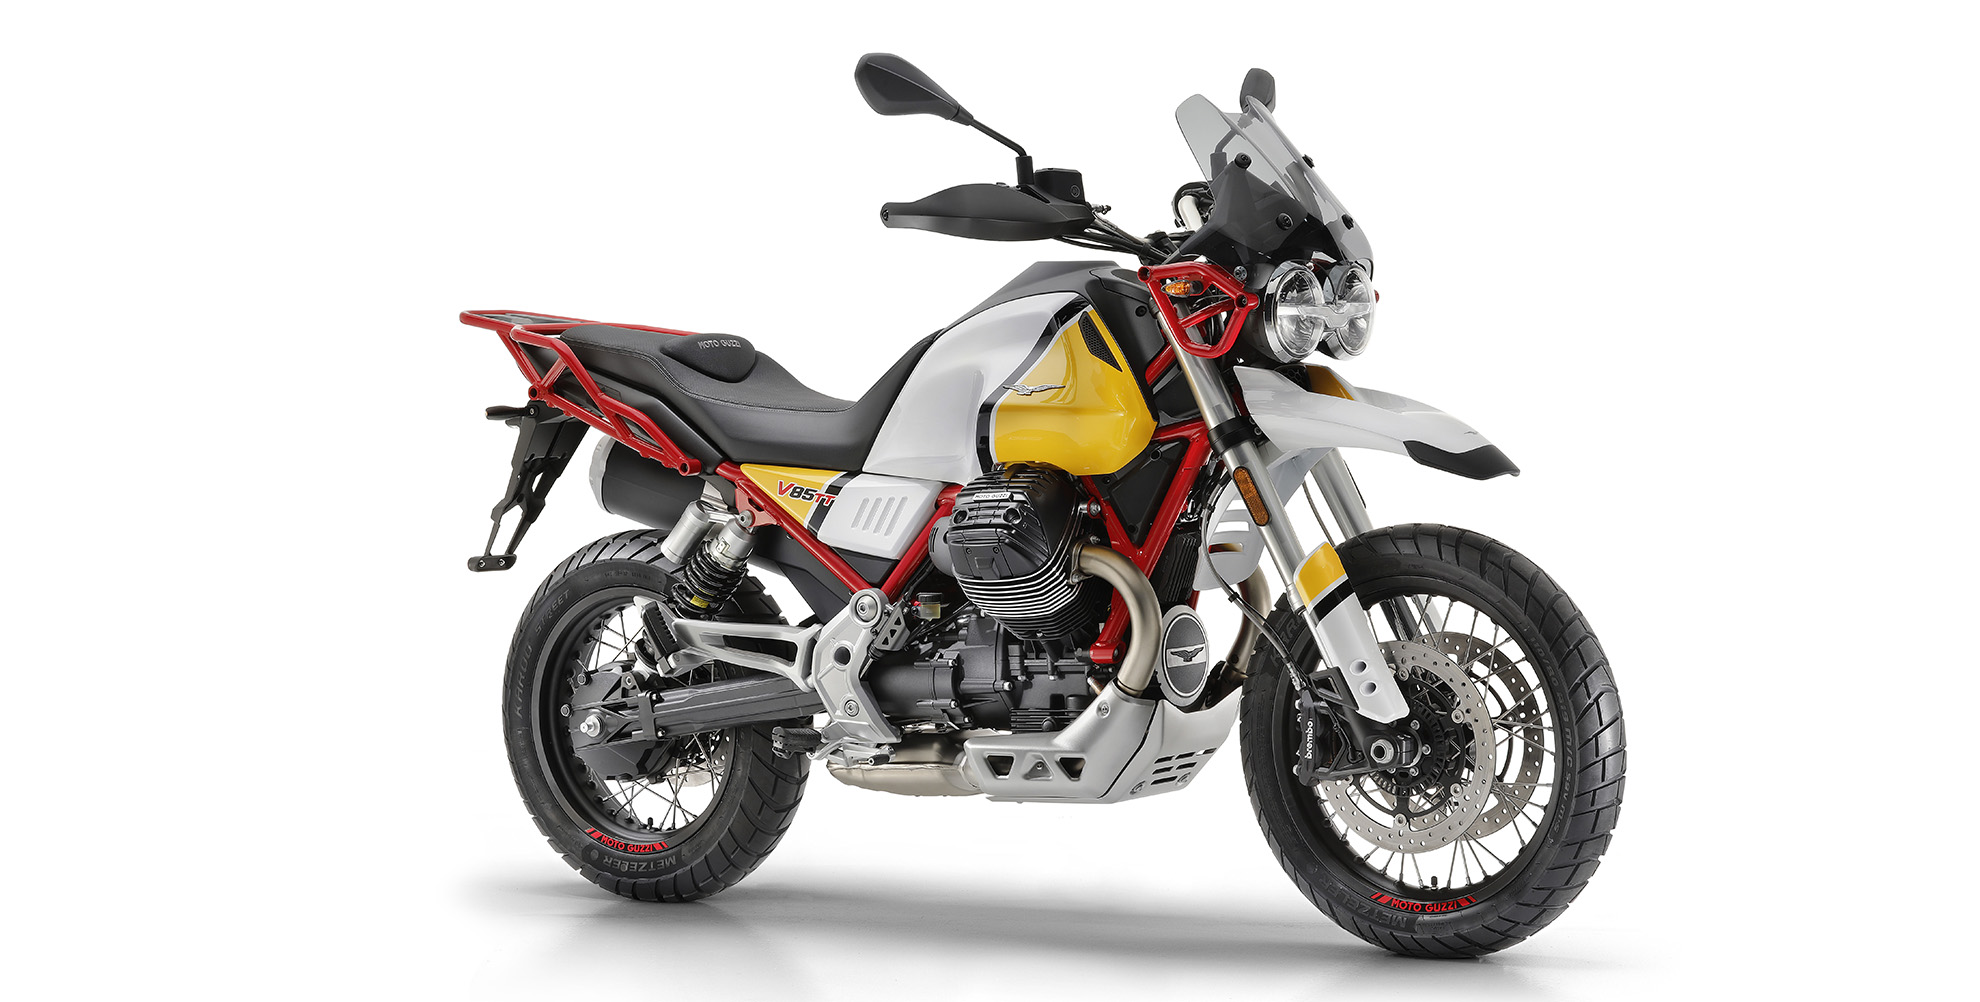 The new moto guzzi v85tt motorcycle, available for rent on our motorcycle tours in Italy